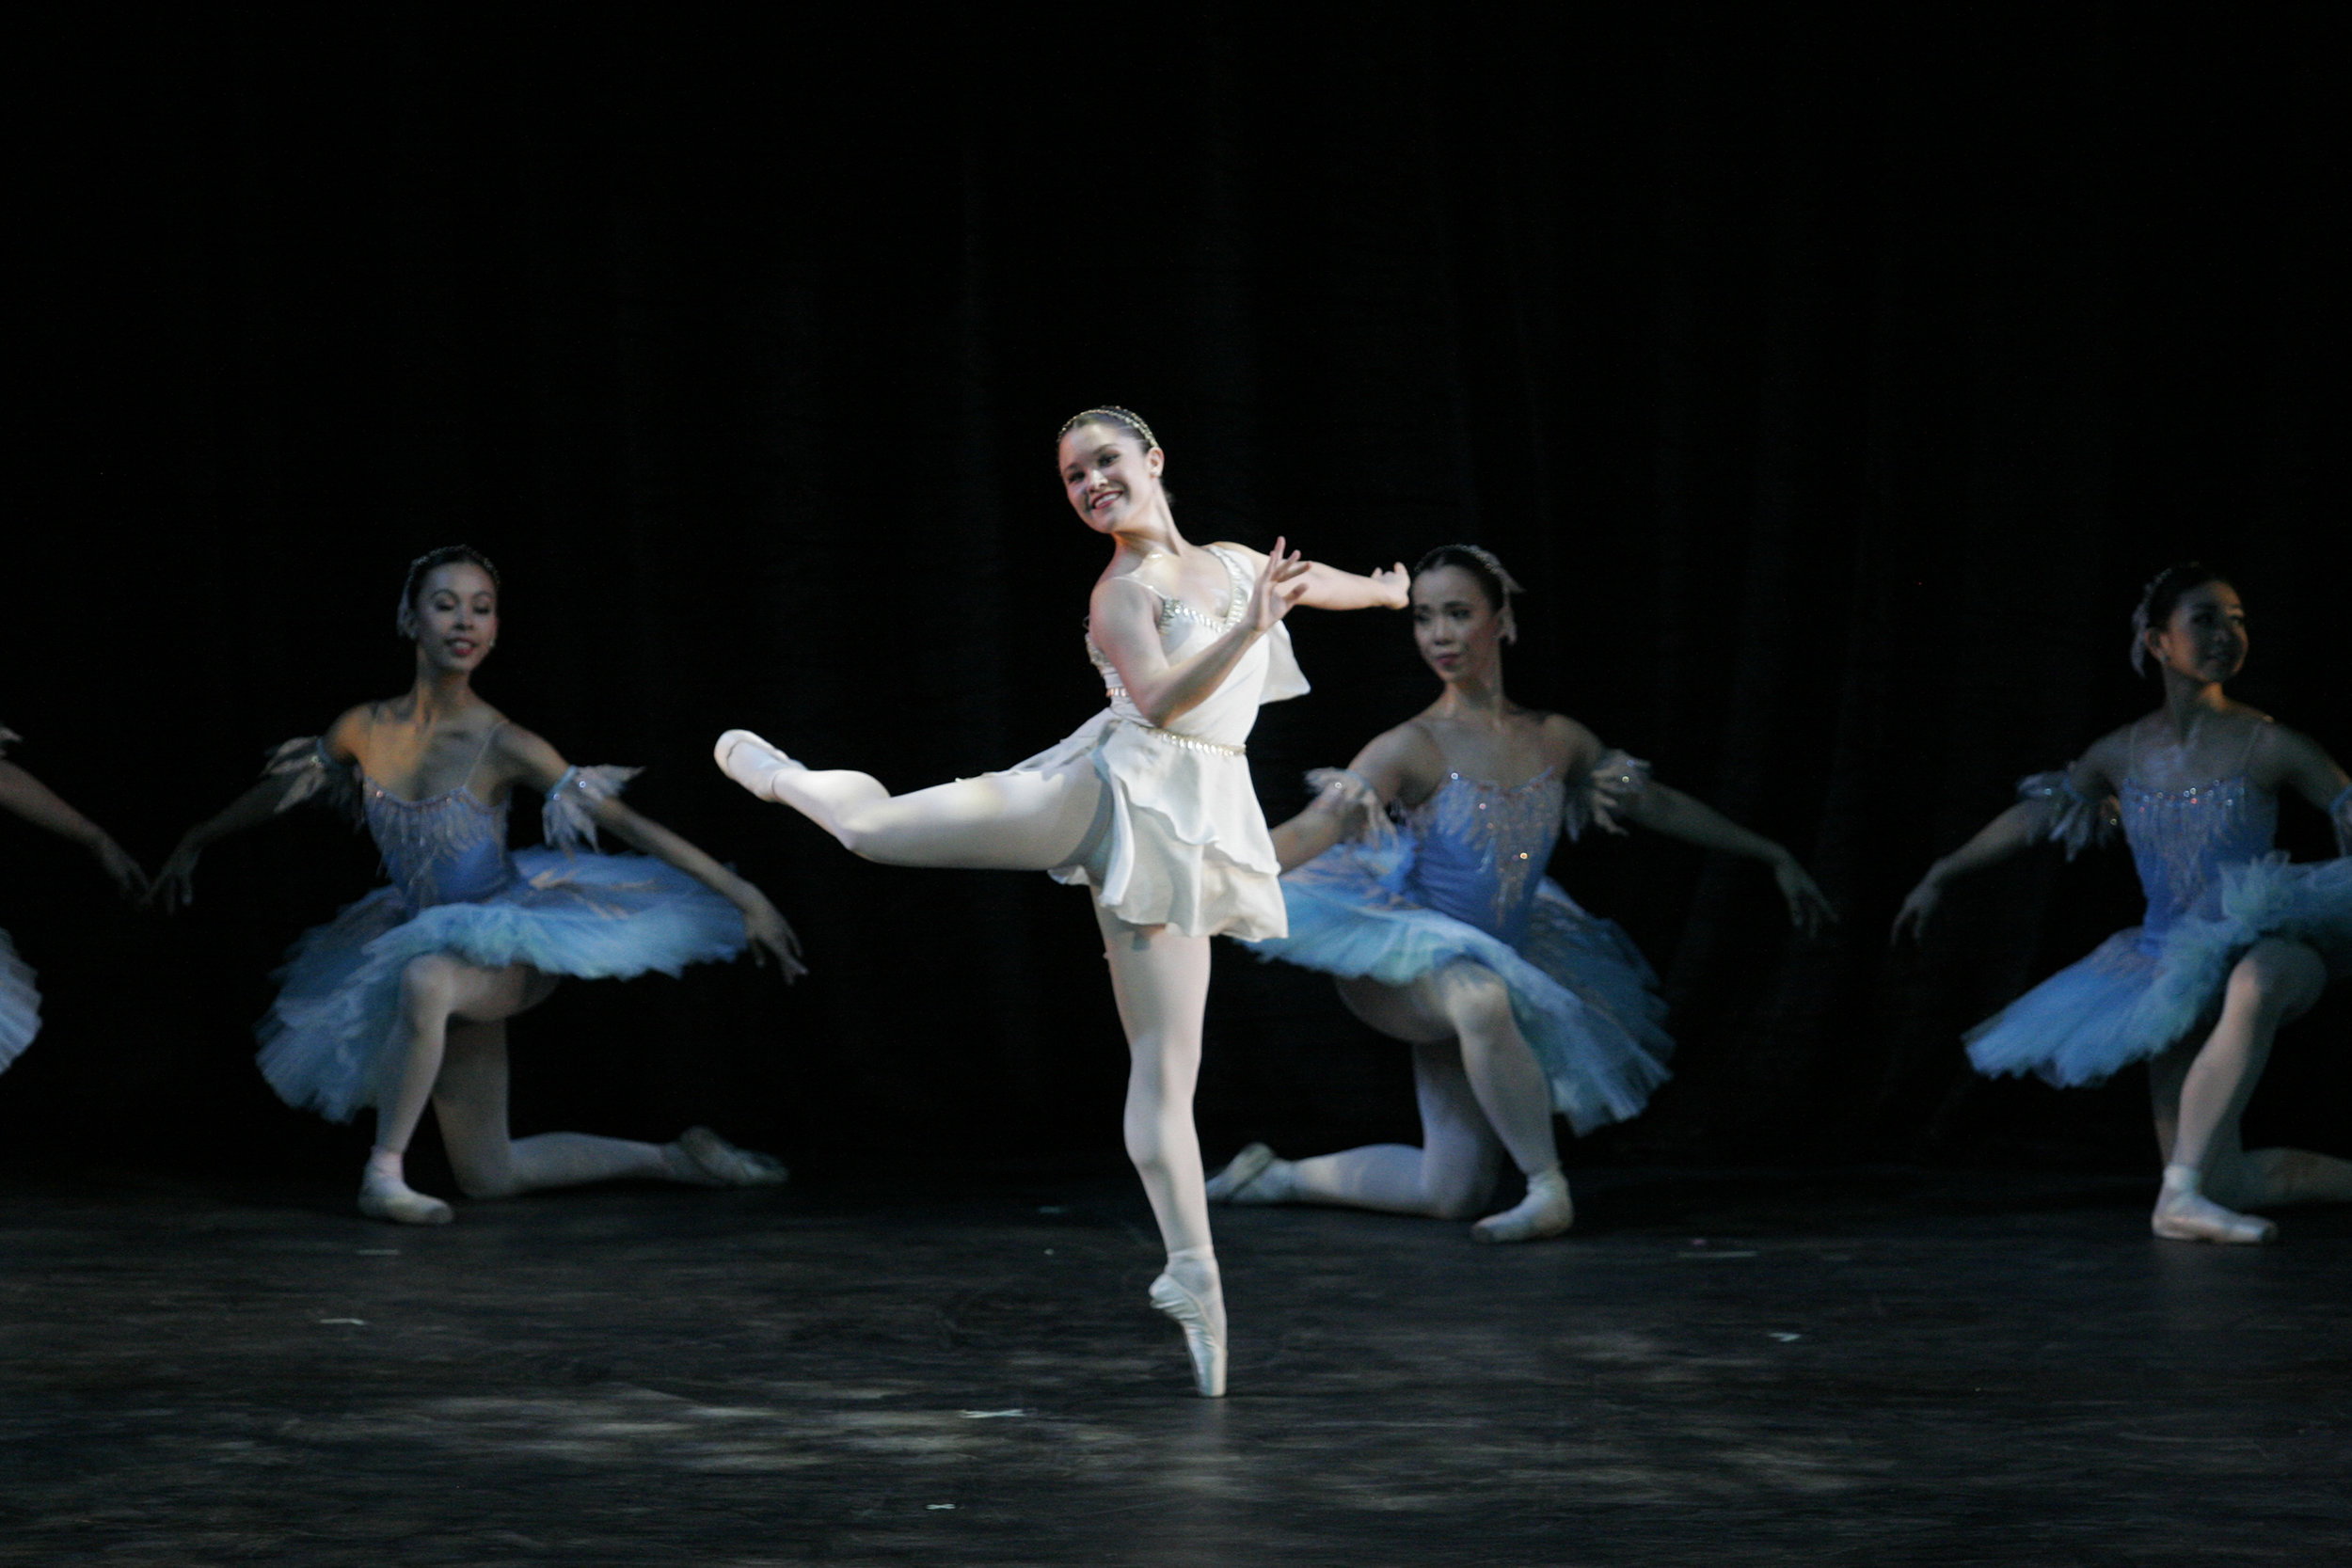 Upon joining Ballet Manila in 2009, Tiffany immediately found herself dancing a solo in Don Quixote. Photo by Ocs Alvarez